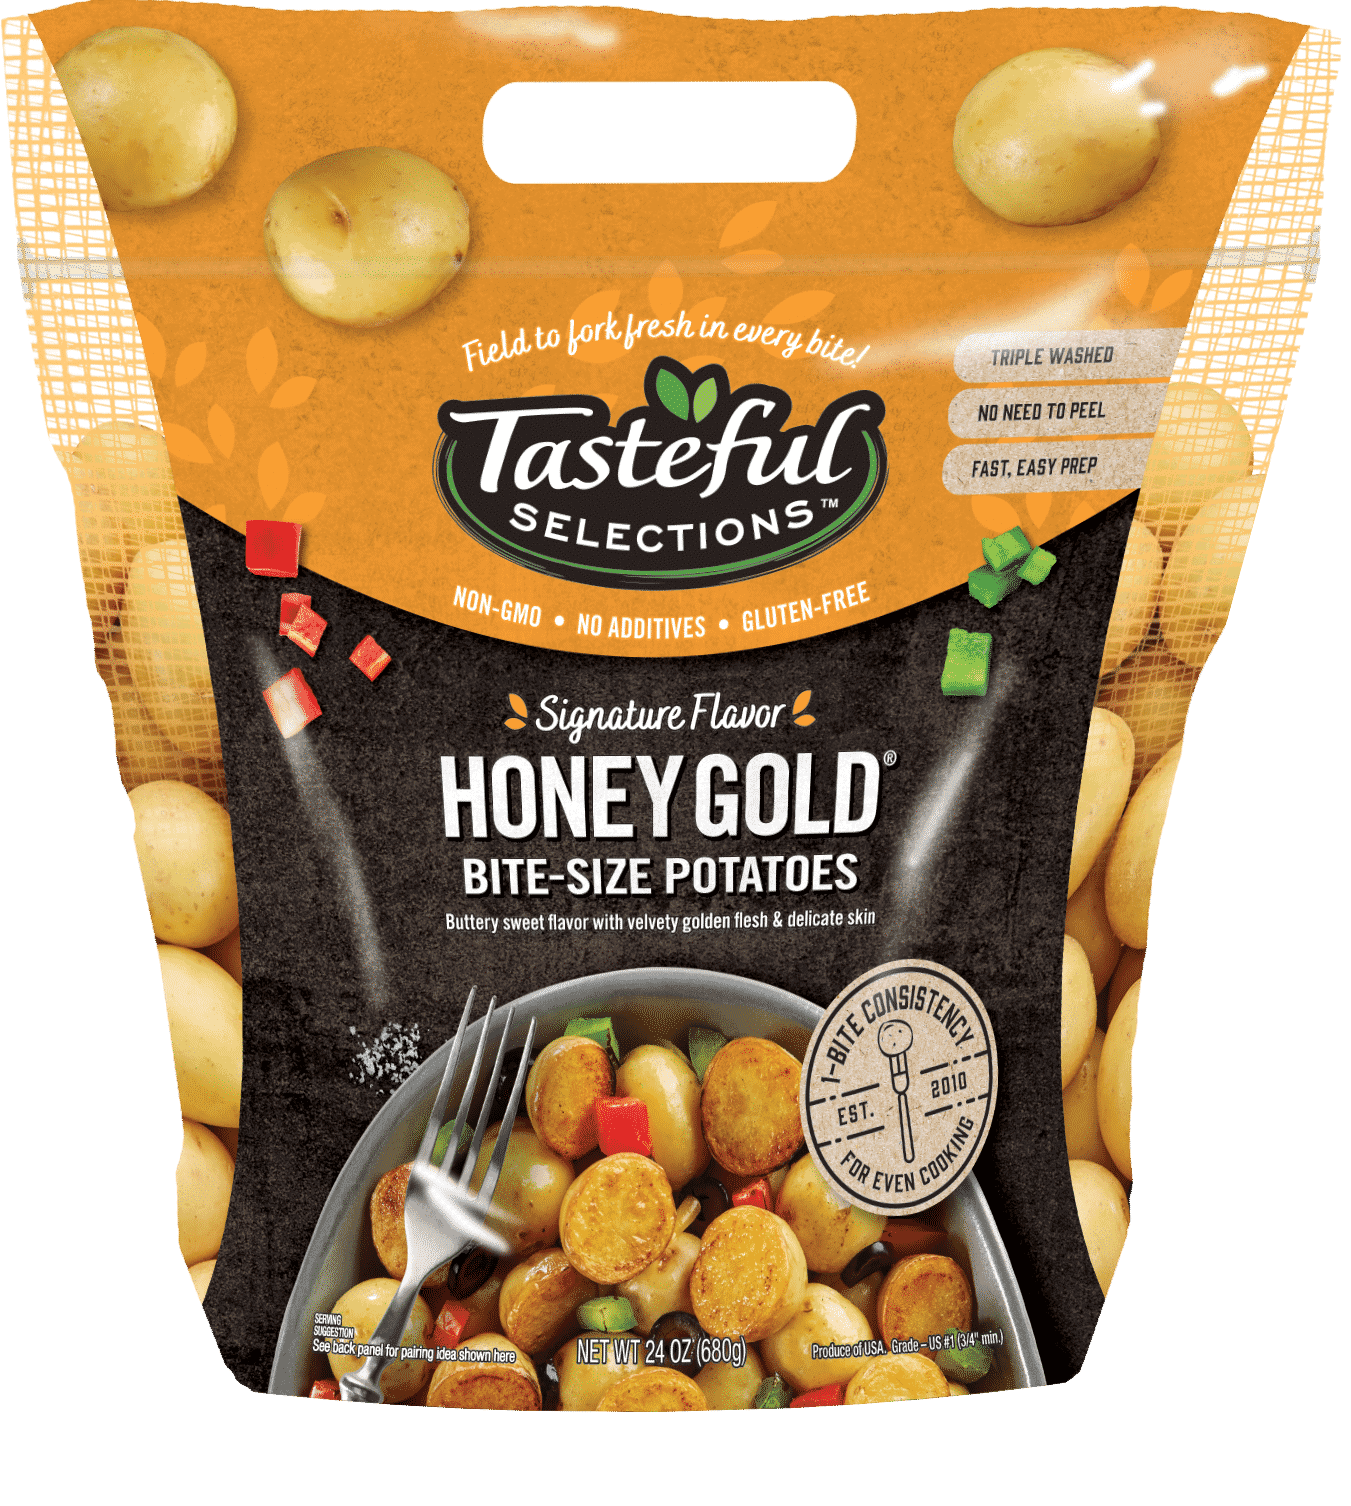 Tasteful Selections Honey Gold Bite-Size Potatoes Gusseted Bag 1-Bite